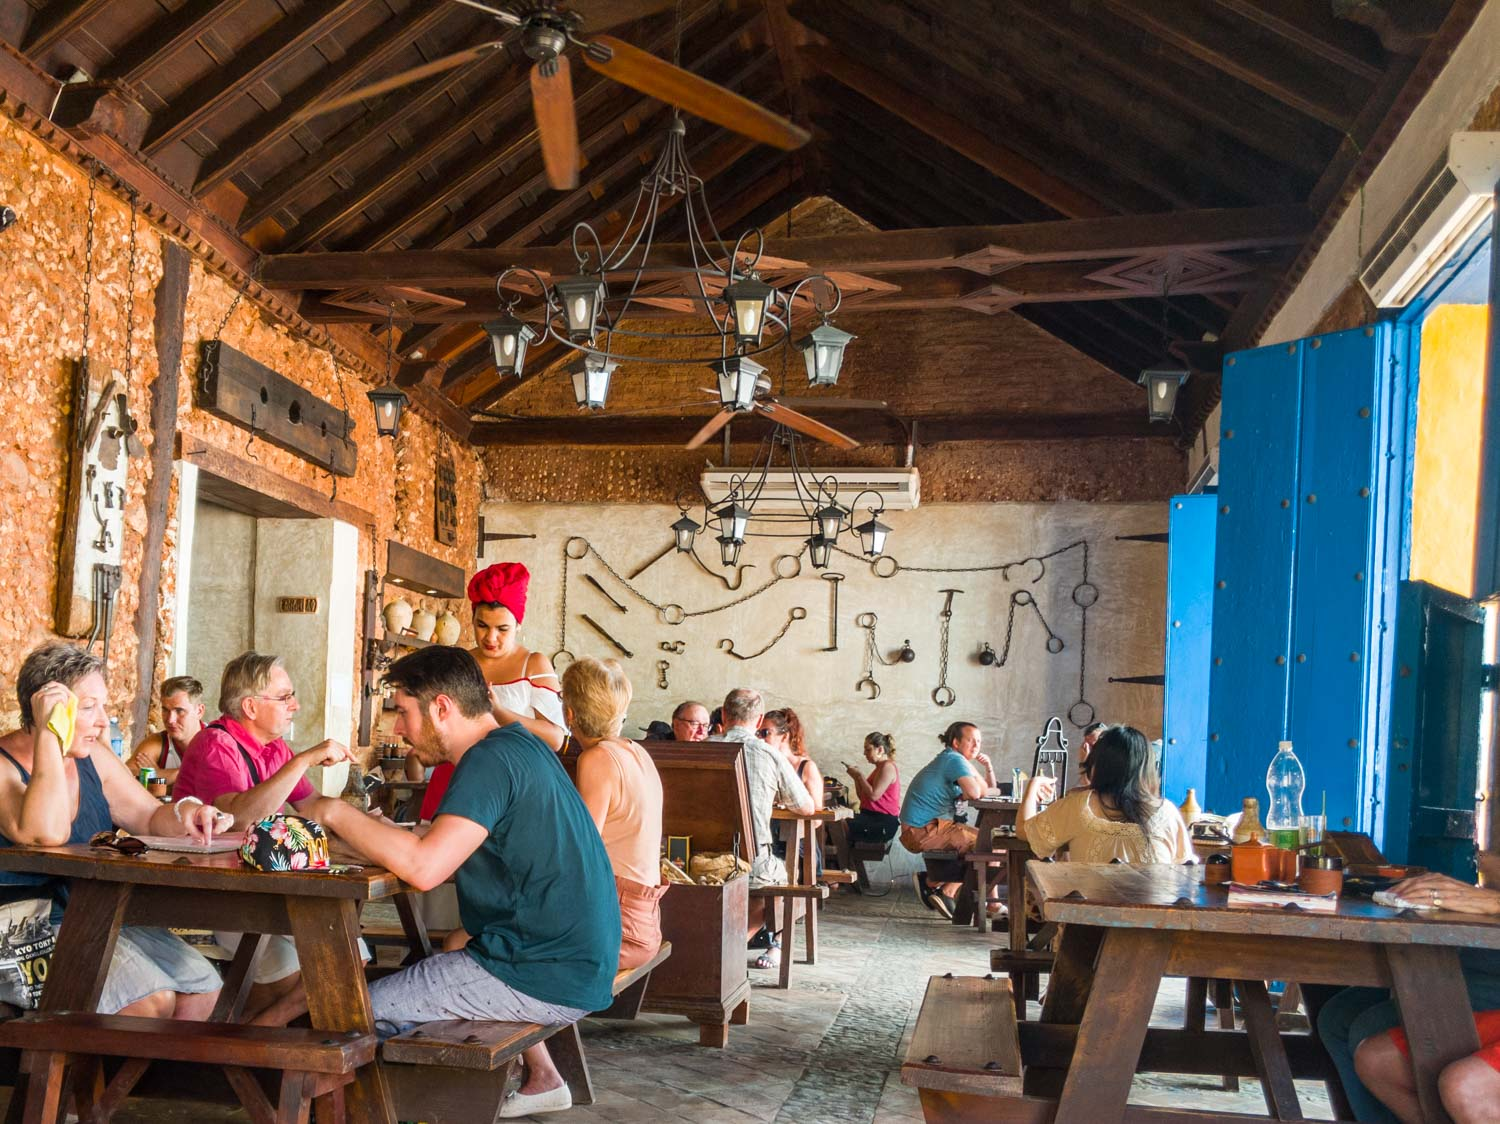 La Botija Taberna is one of the best places to eat in Trinidad Cuba